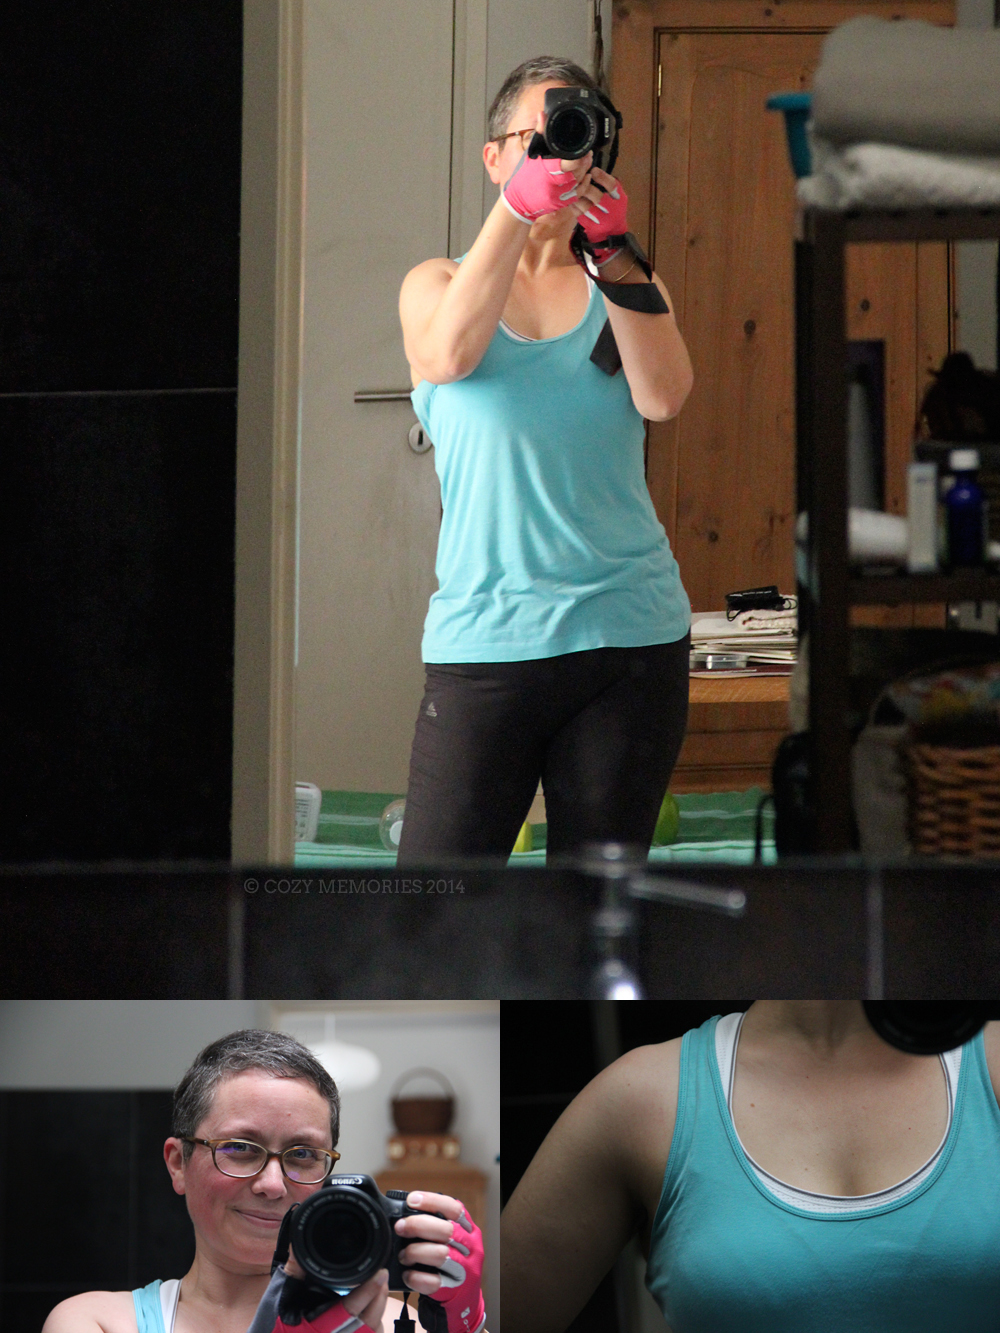 Not afraid to take photos DURING my workout, all red faced & sweaty. No pain, no gain.